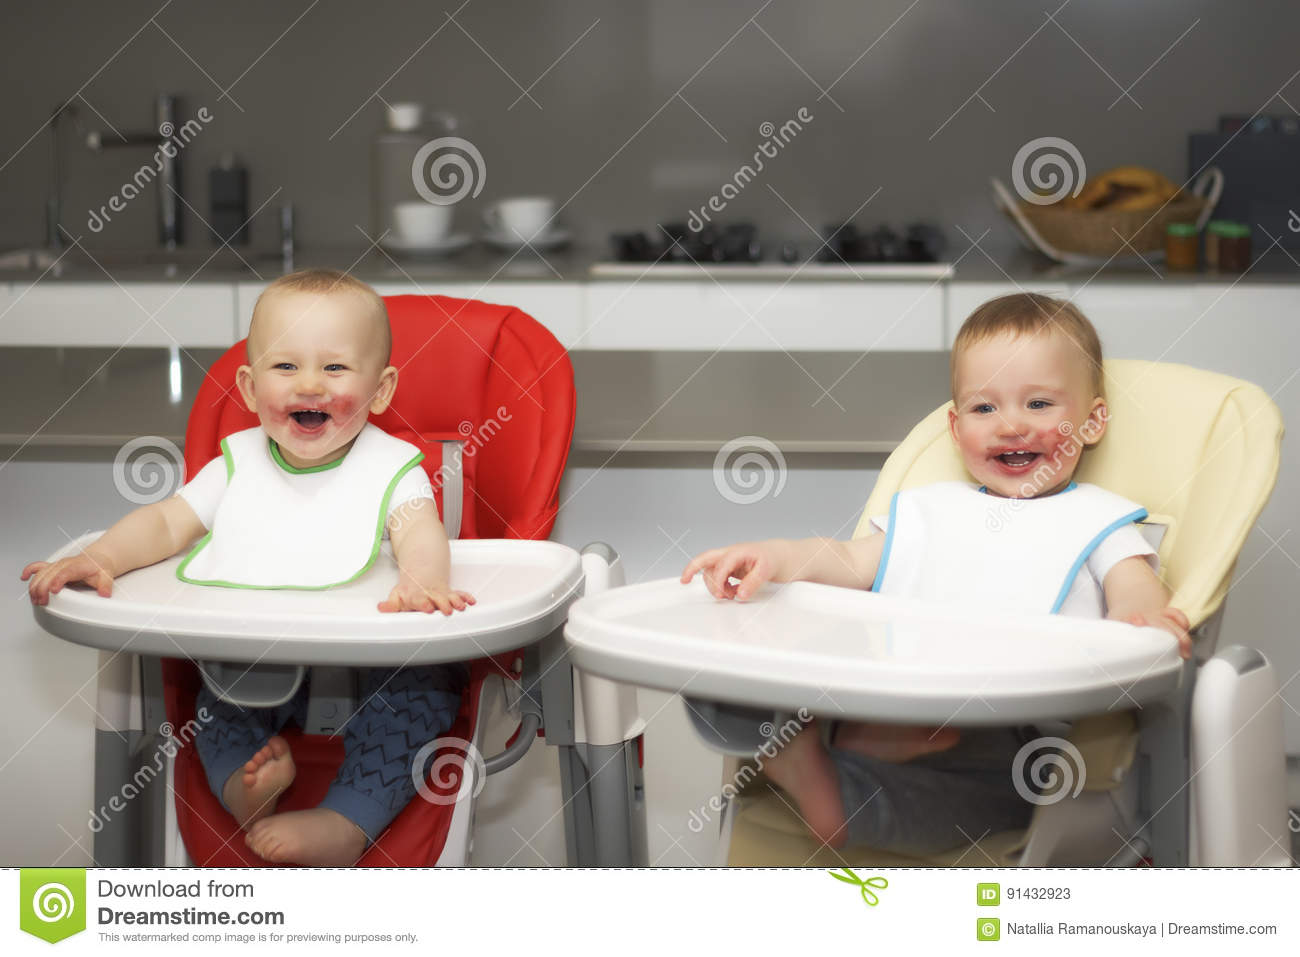 Children eat blueberries in a high baby chair. The boys have a dirty face